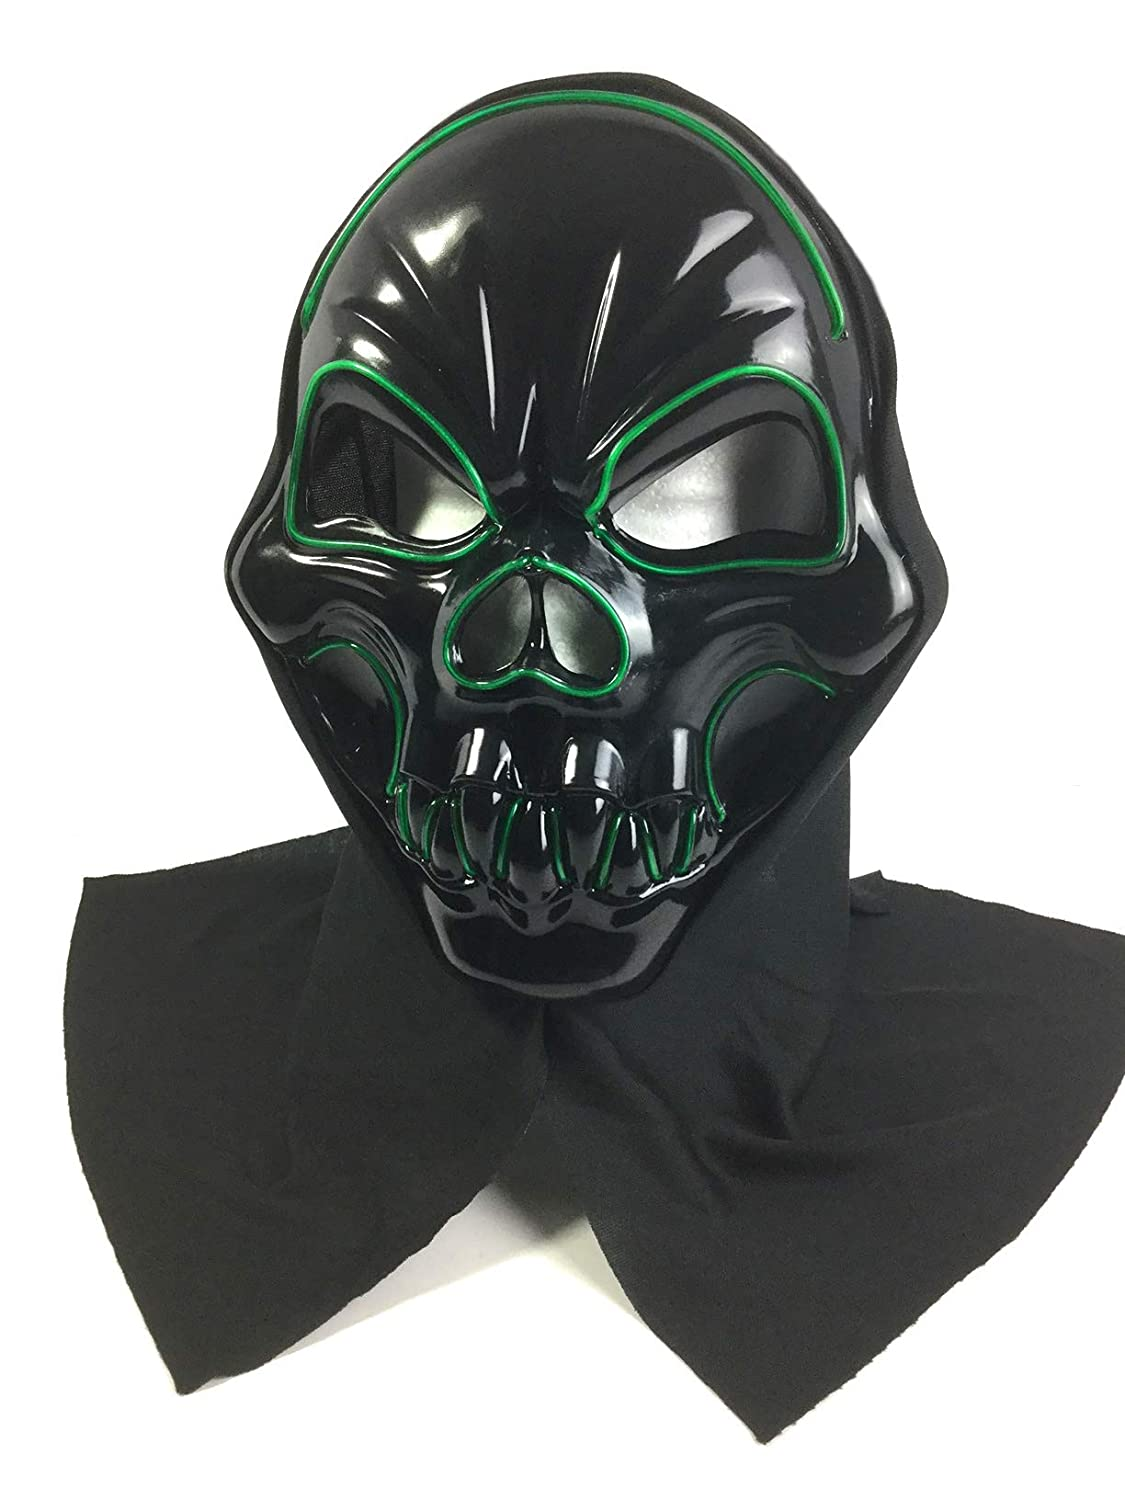 Looking Spooky Spooky green Light up Ghoul mask with black shoulder cape